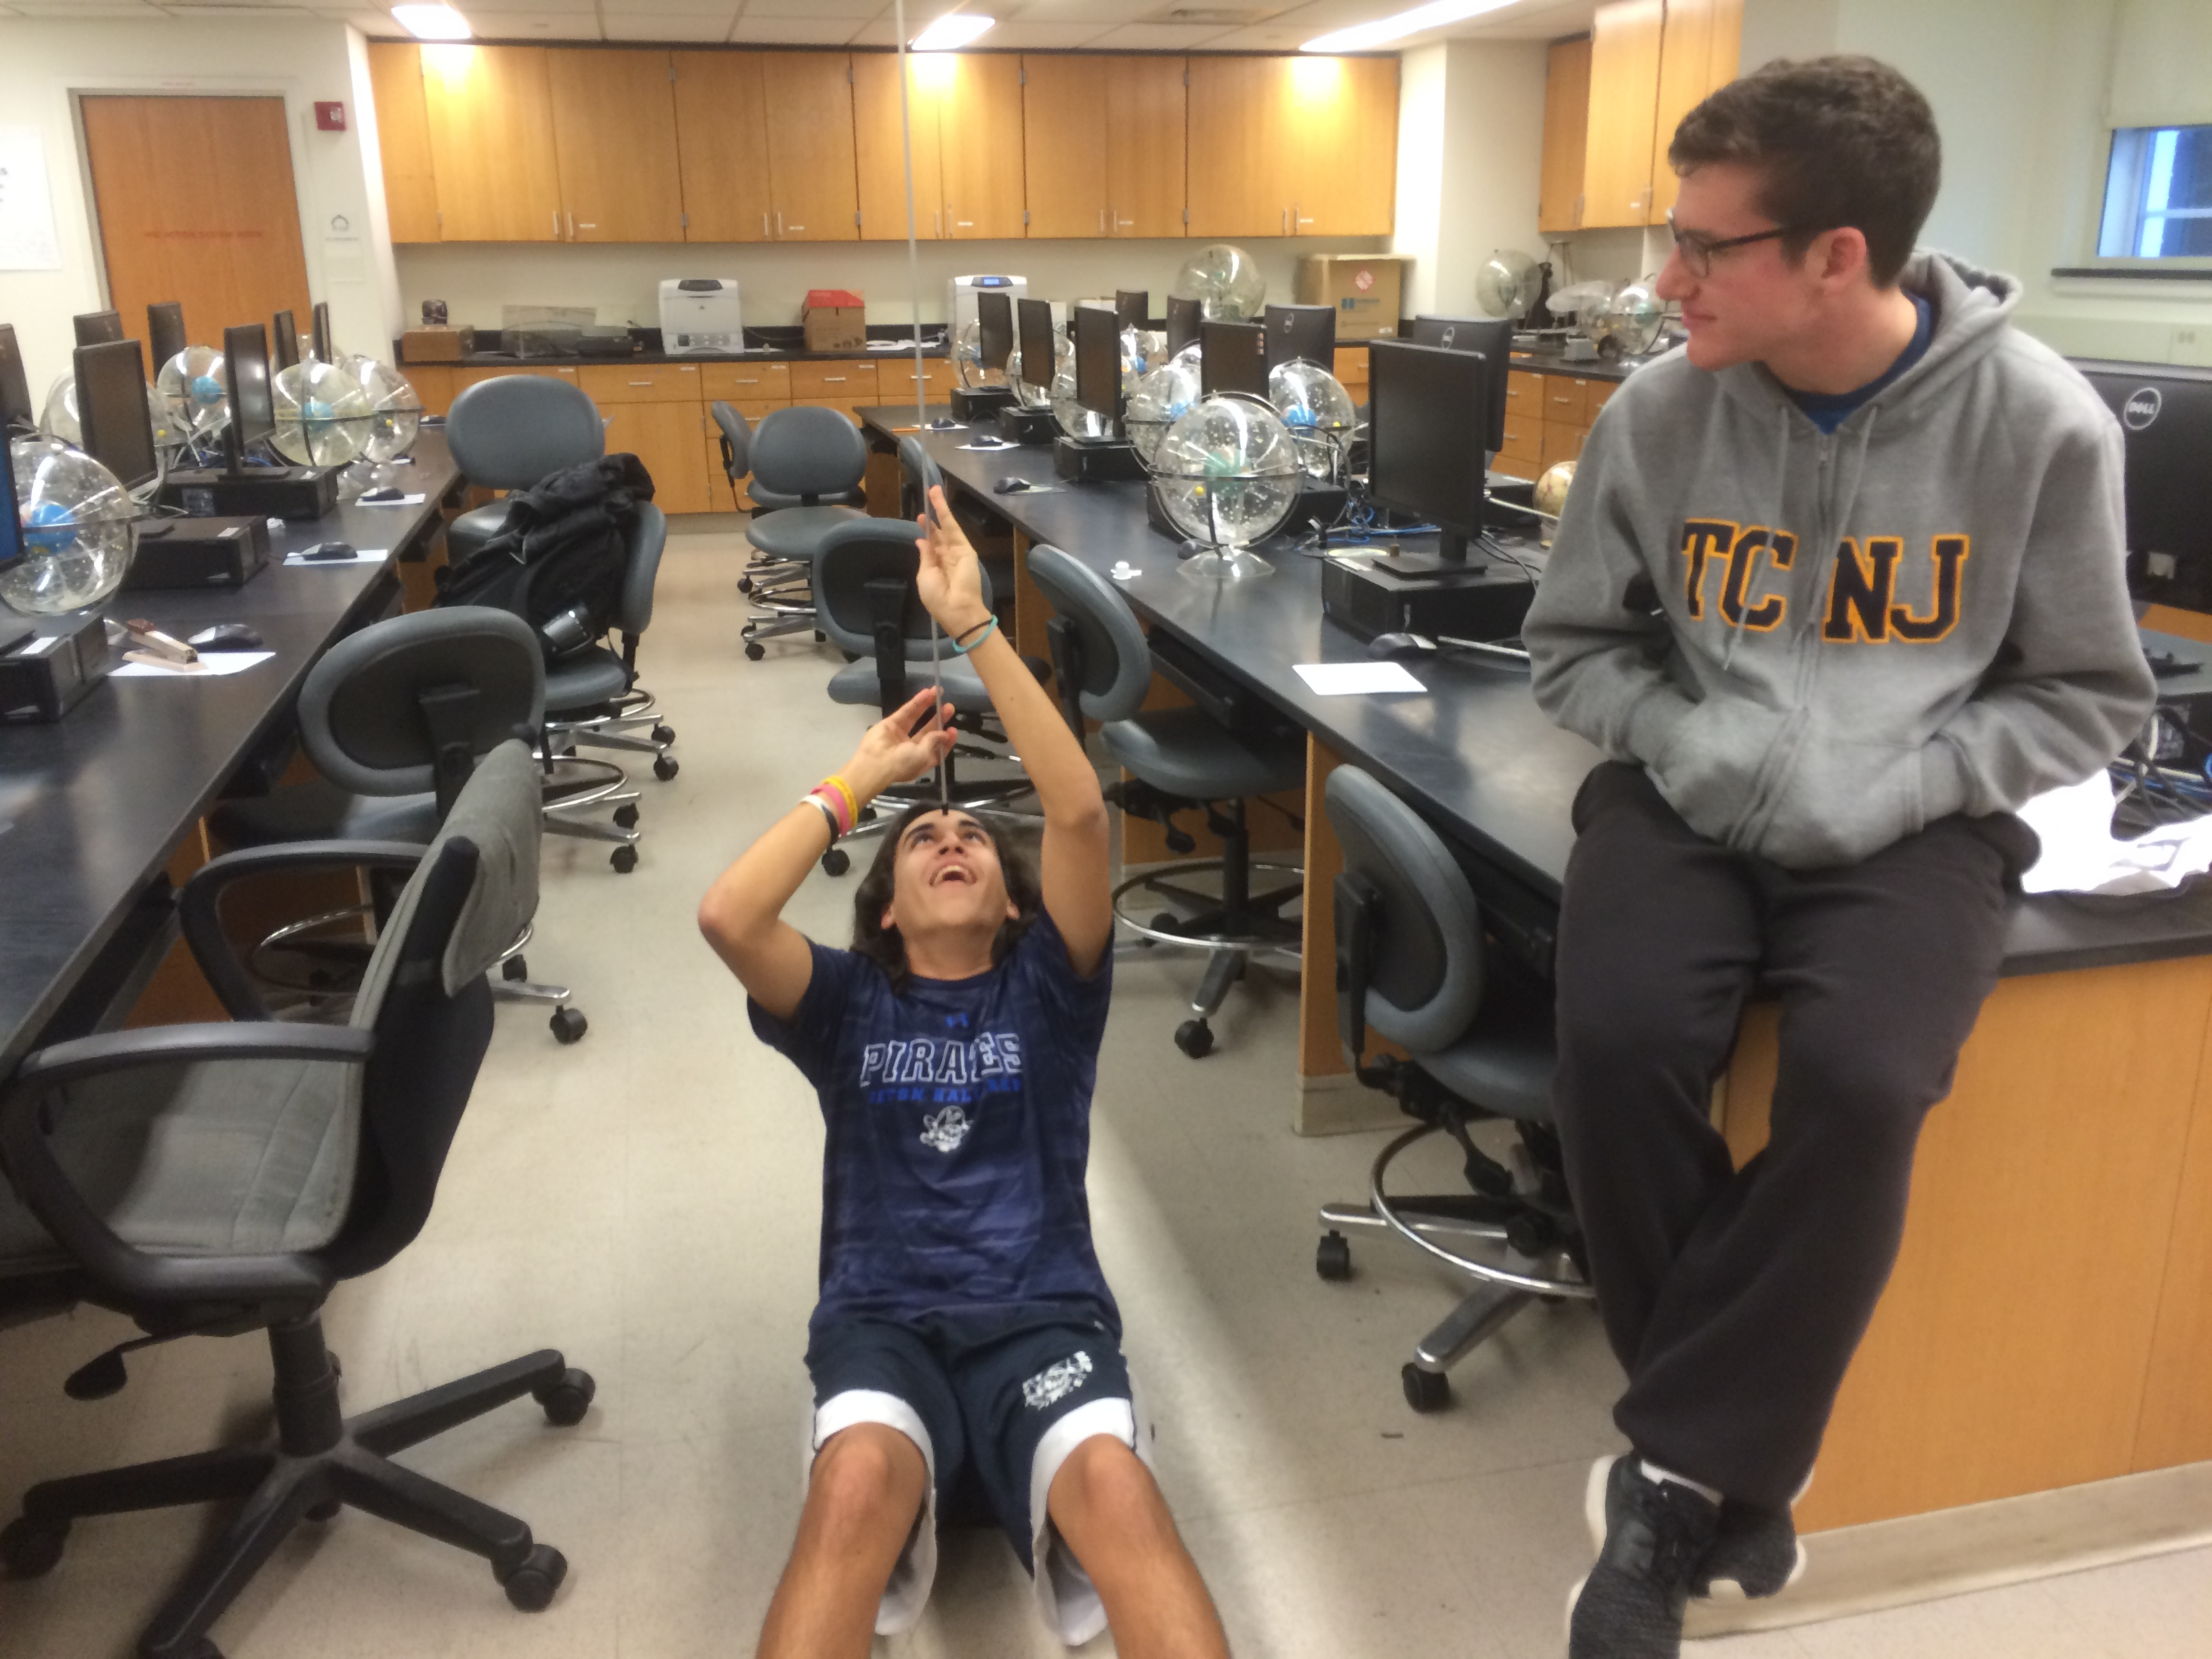 Students messing around in Physics classroom